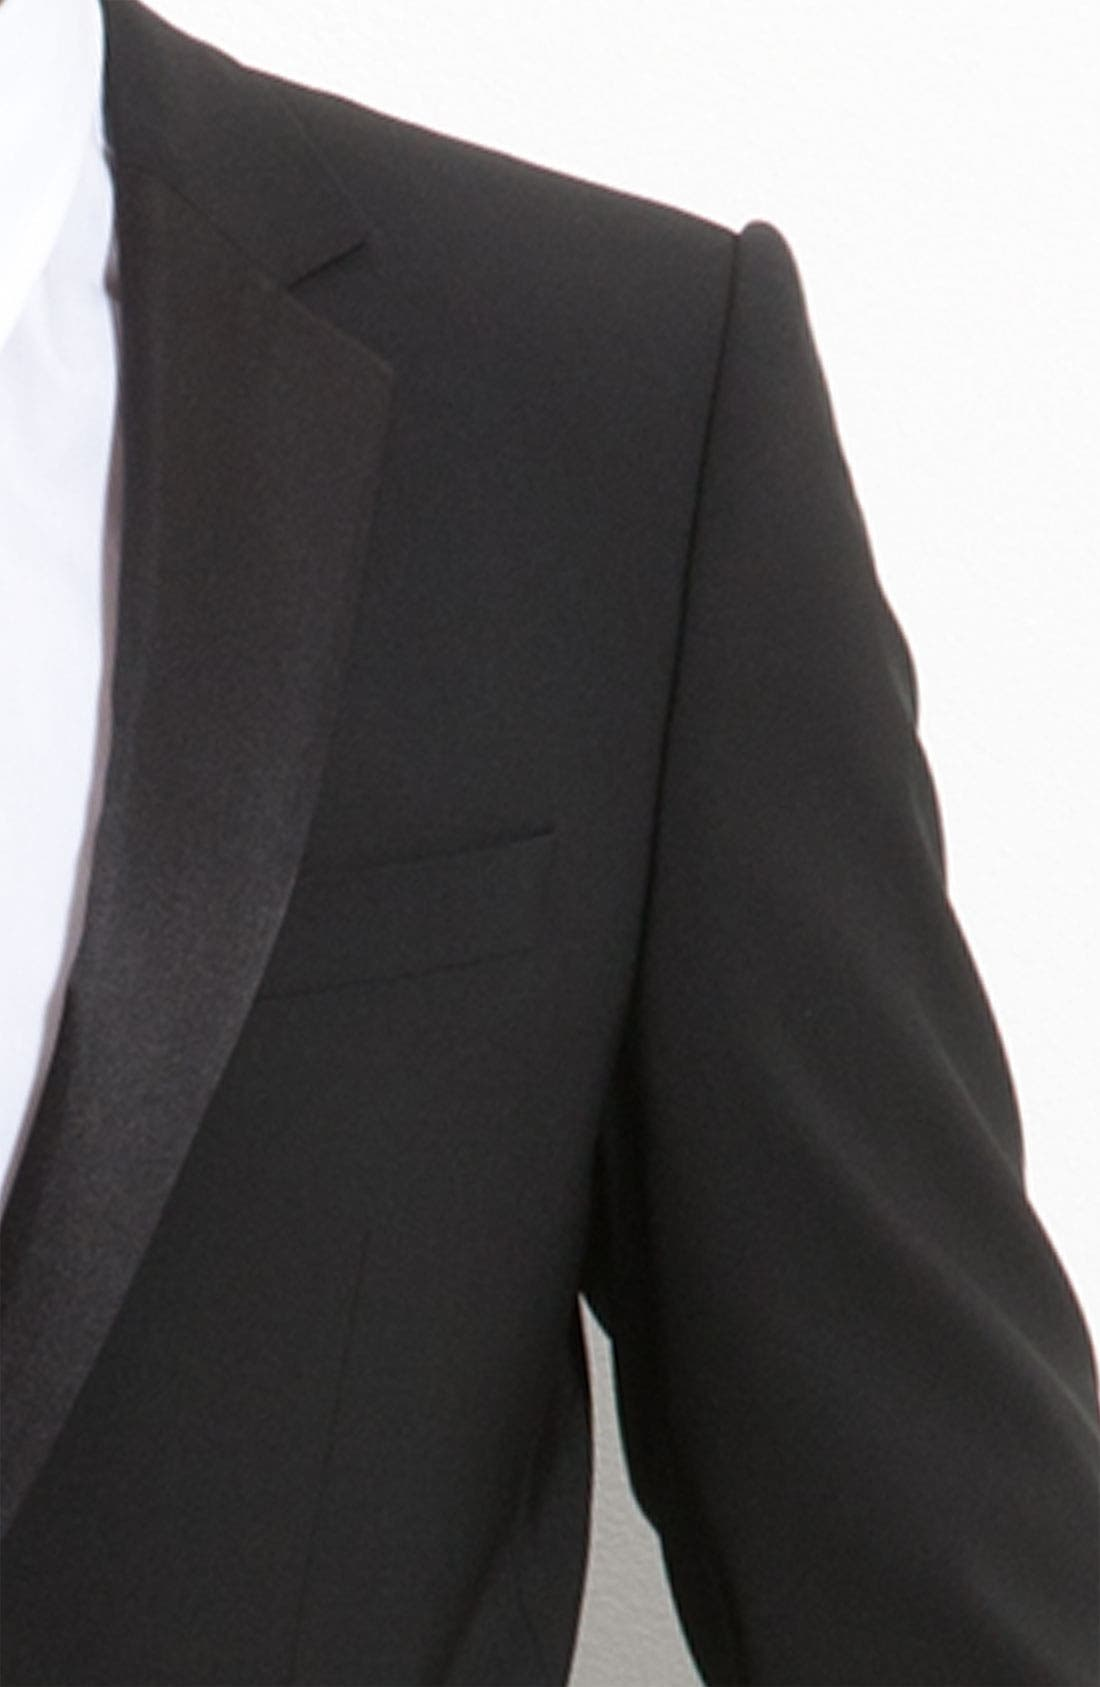 Alternate Image 3  - HUGO 'Aikin Hollo' Trim Fit Wool Tuxedo